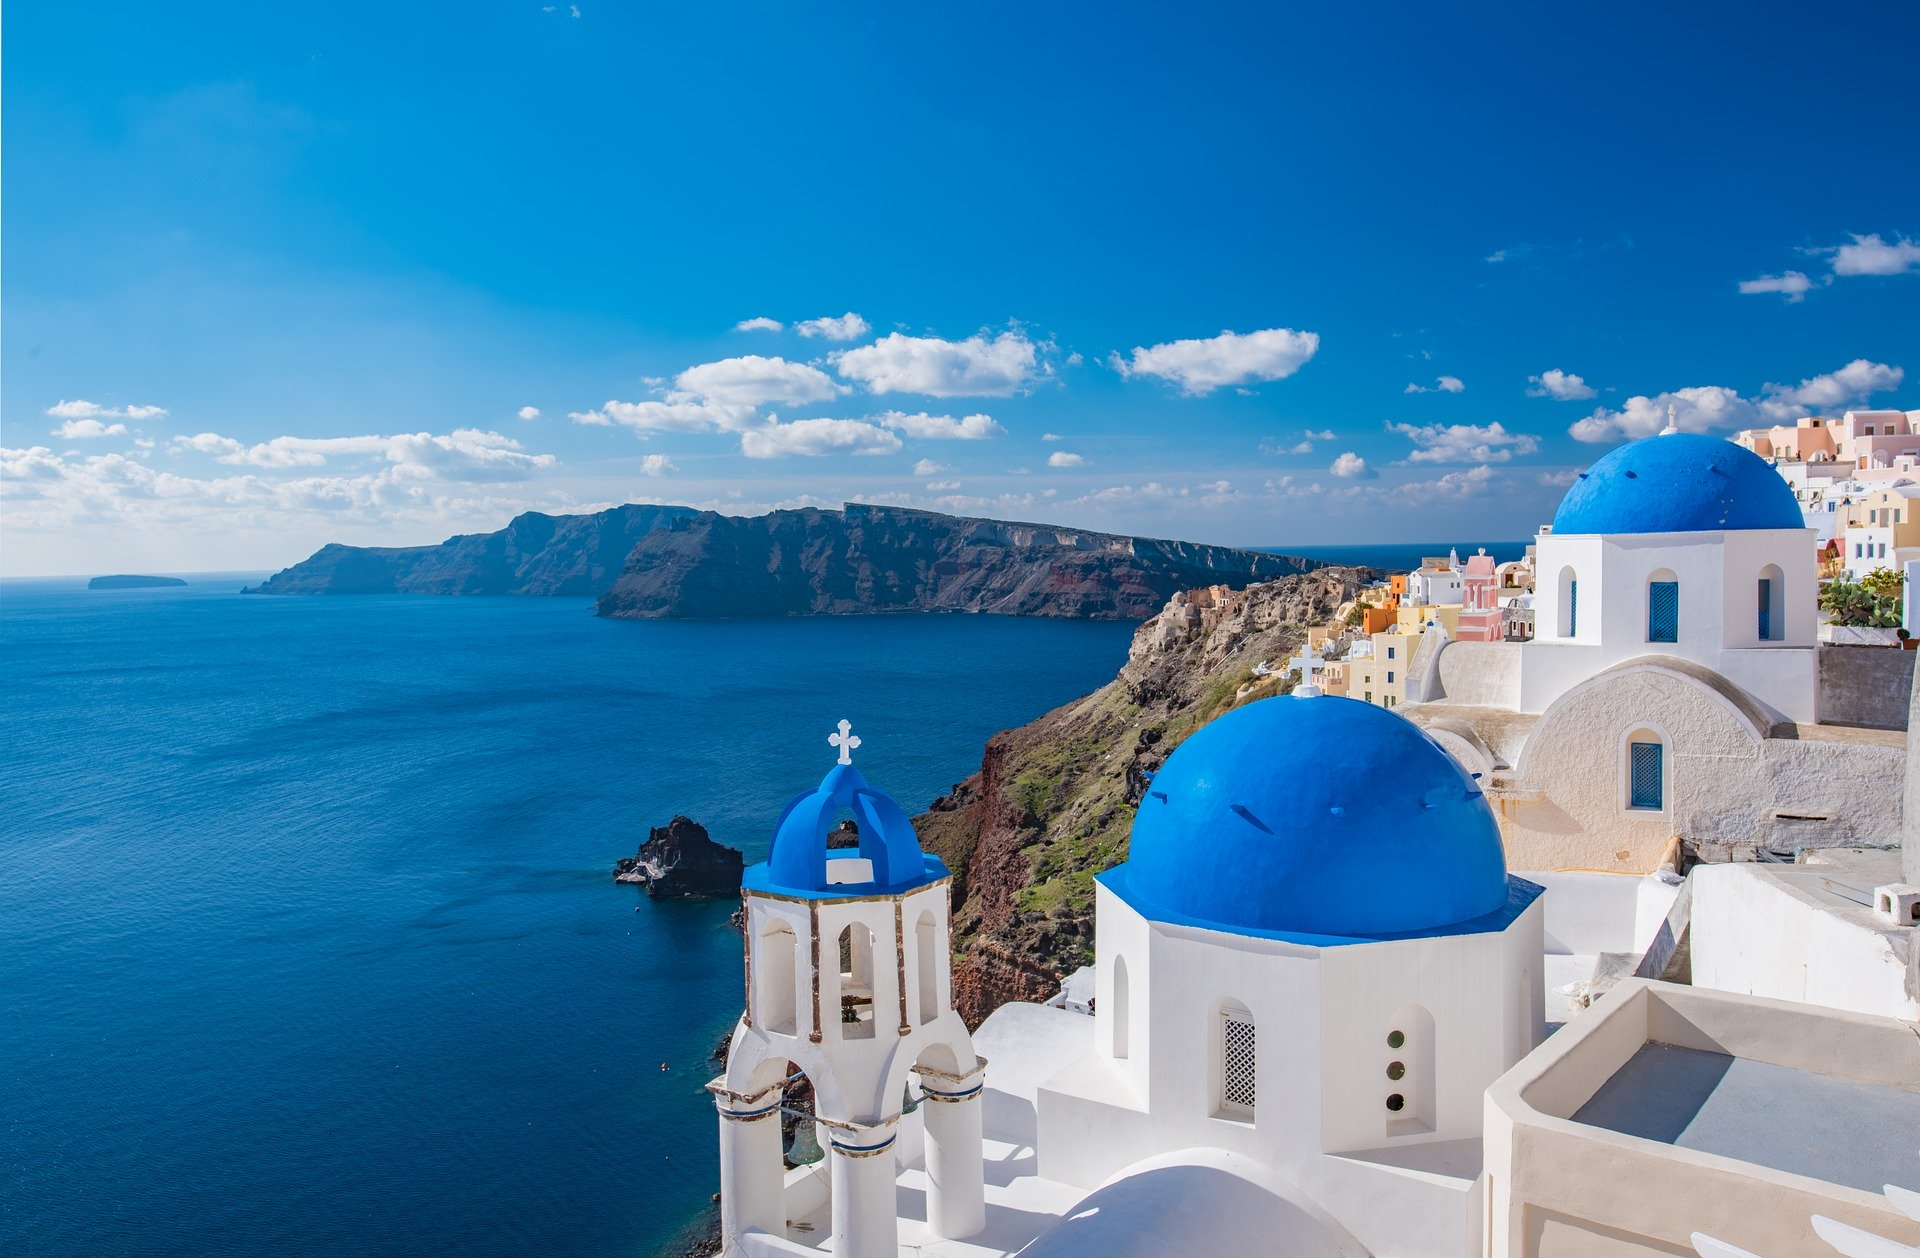 Church on the Island of Santorini - Photo © Russel_Yan